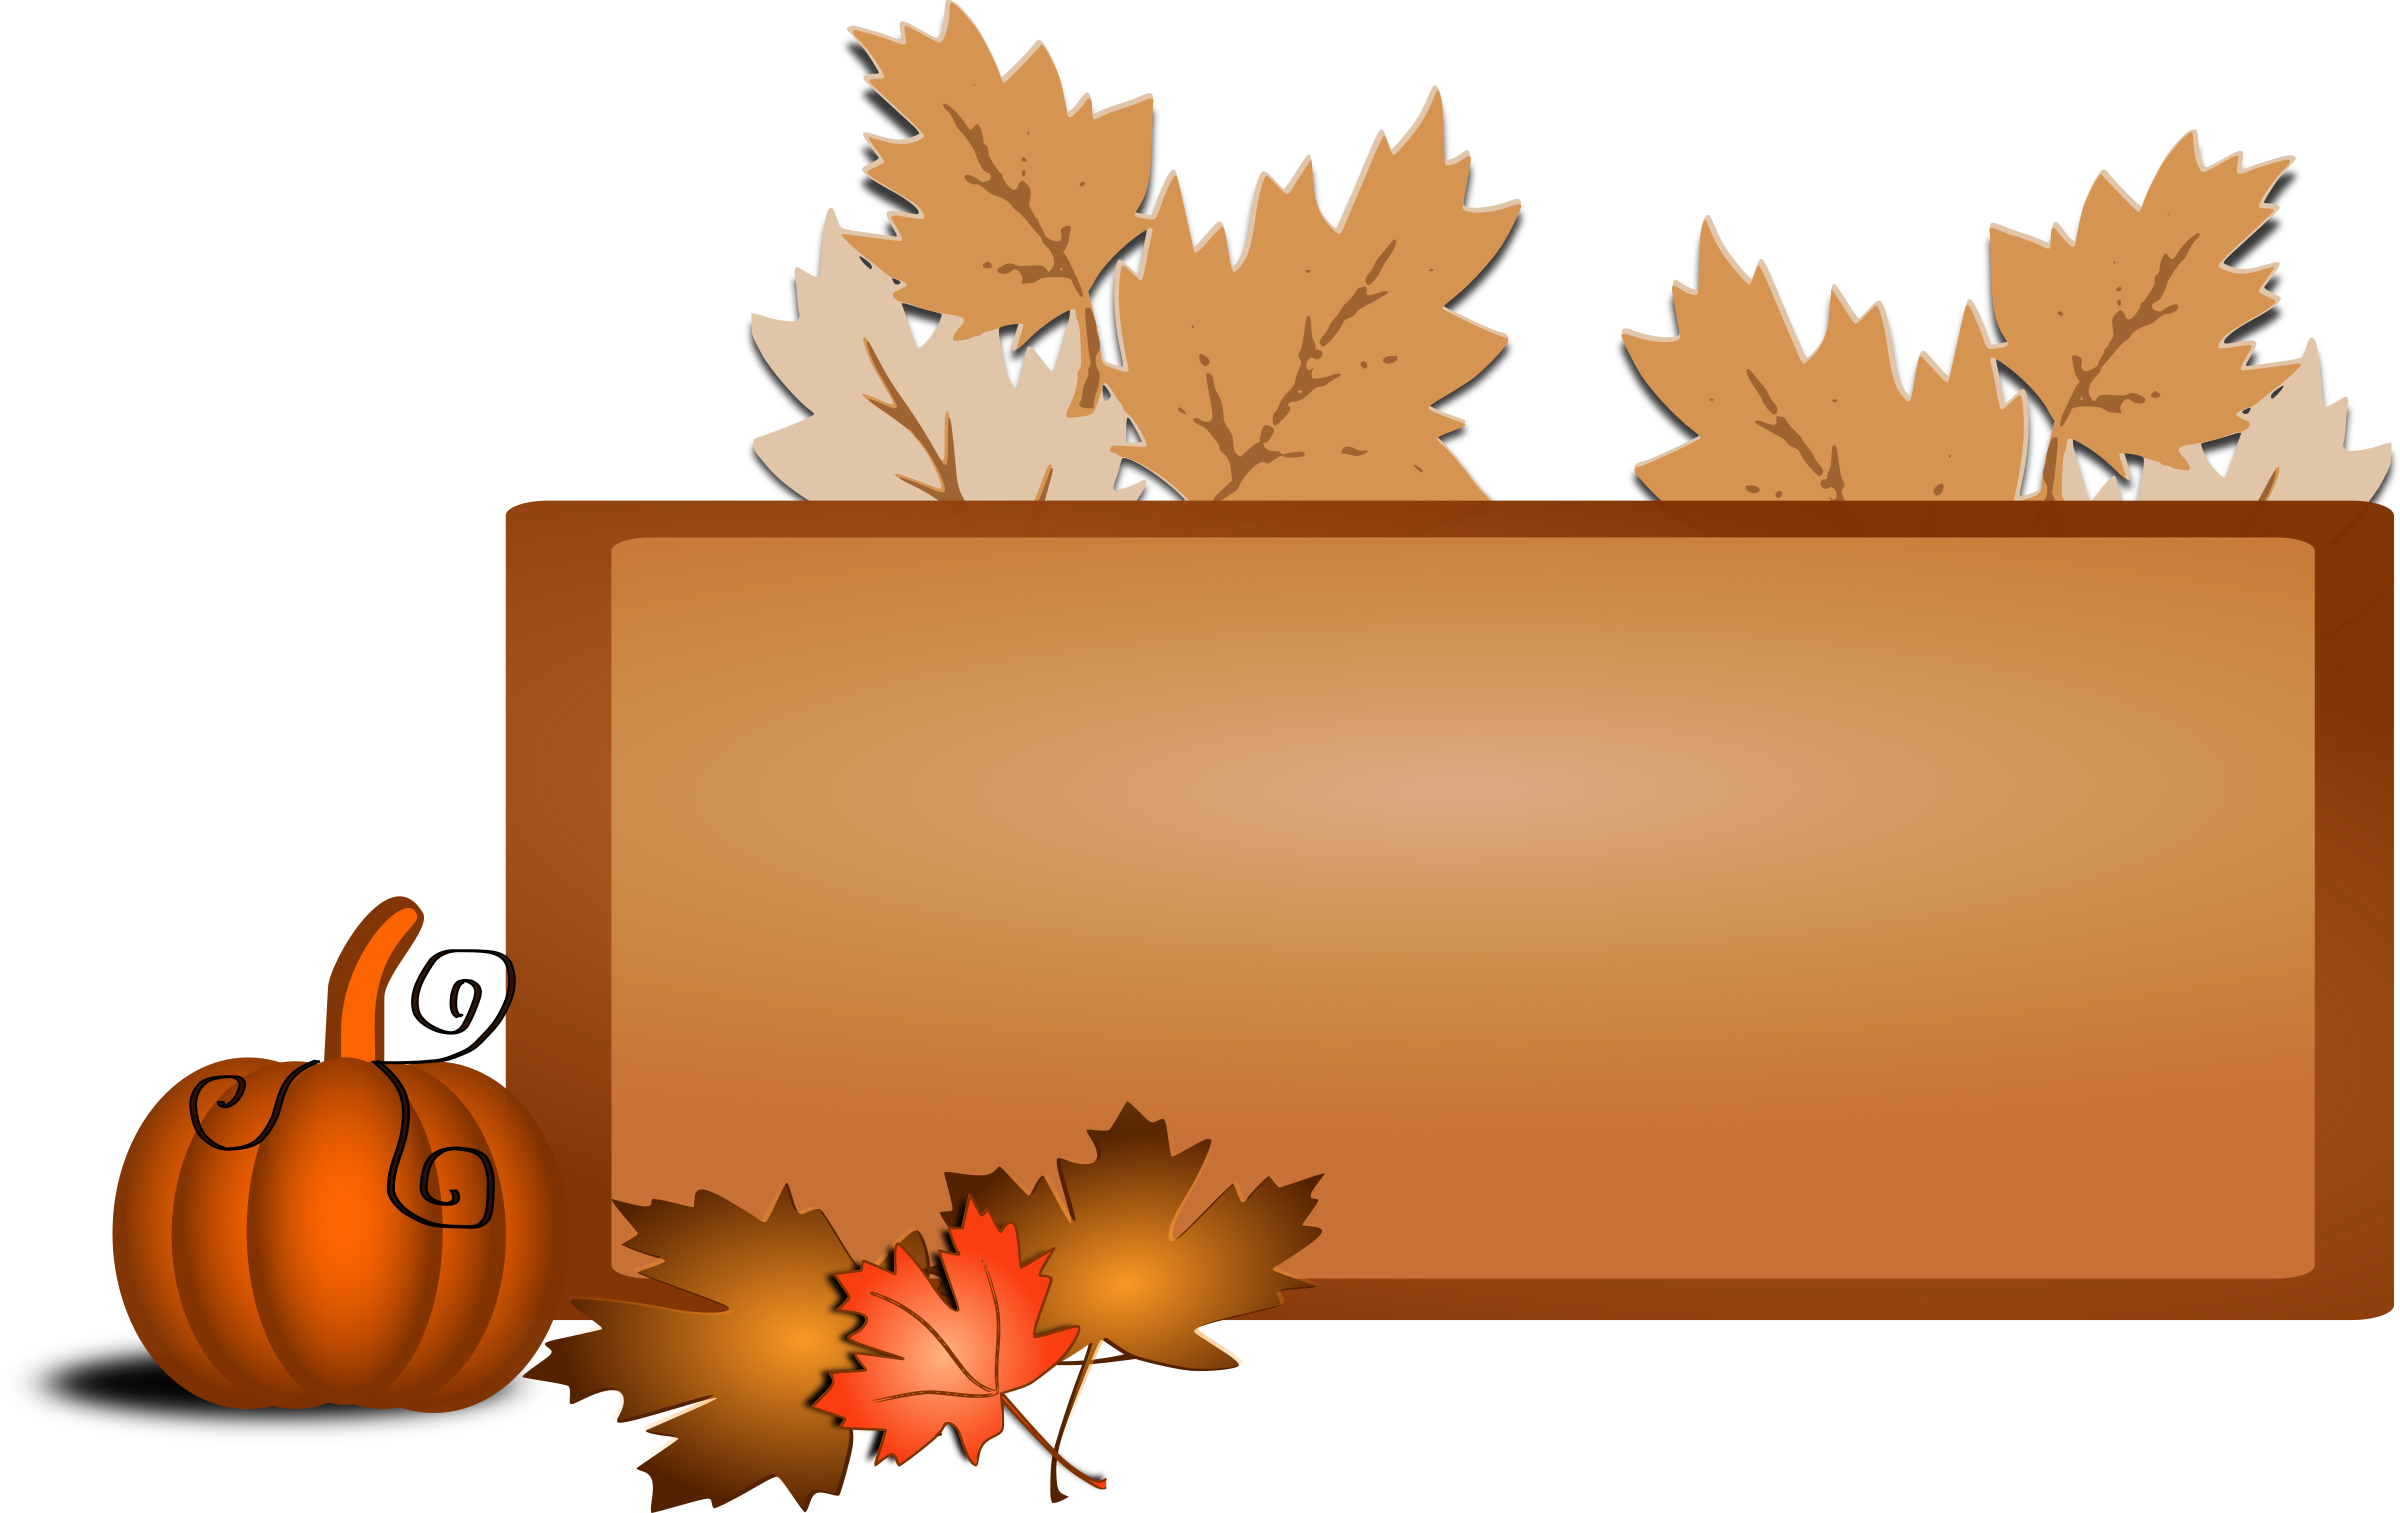 Fall thanksgiving clipart autumn banner stock Clipart - Fall clip art banner stock